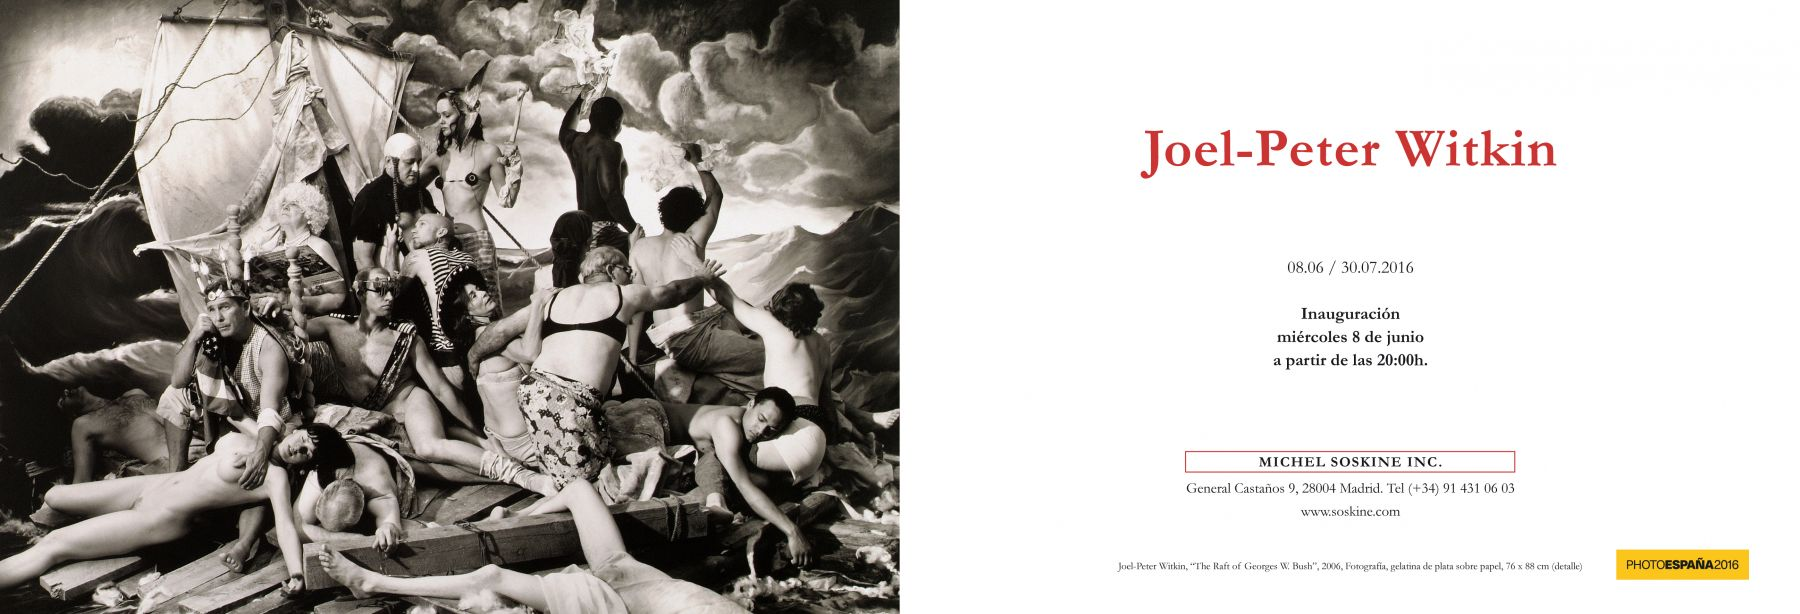 Joel-Peter Witkin, JUNE 8 – JULY 30, 2016